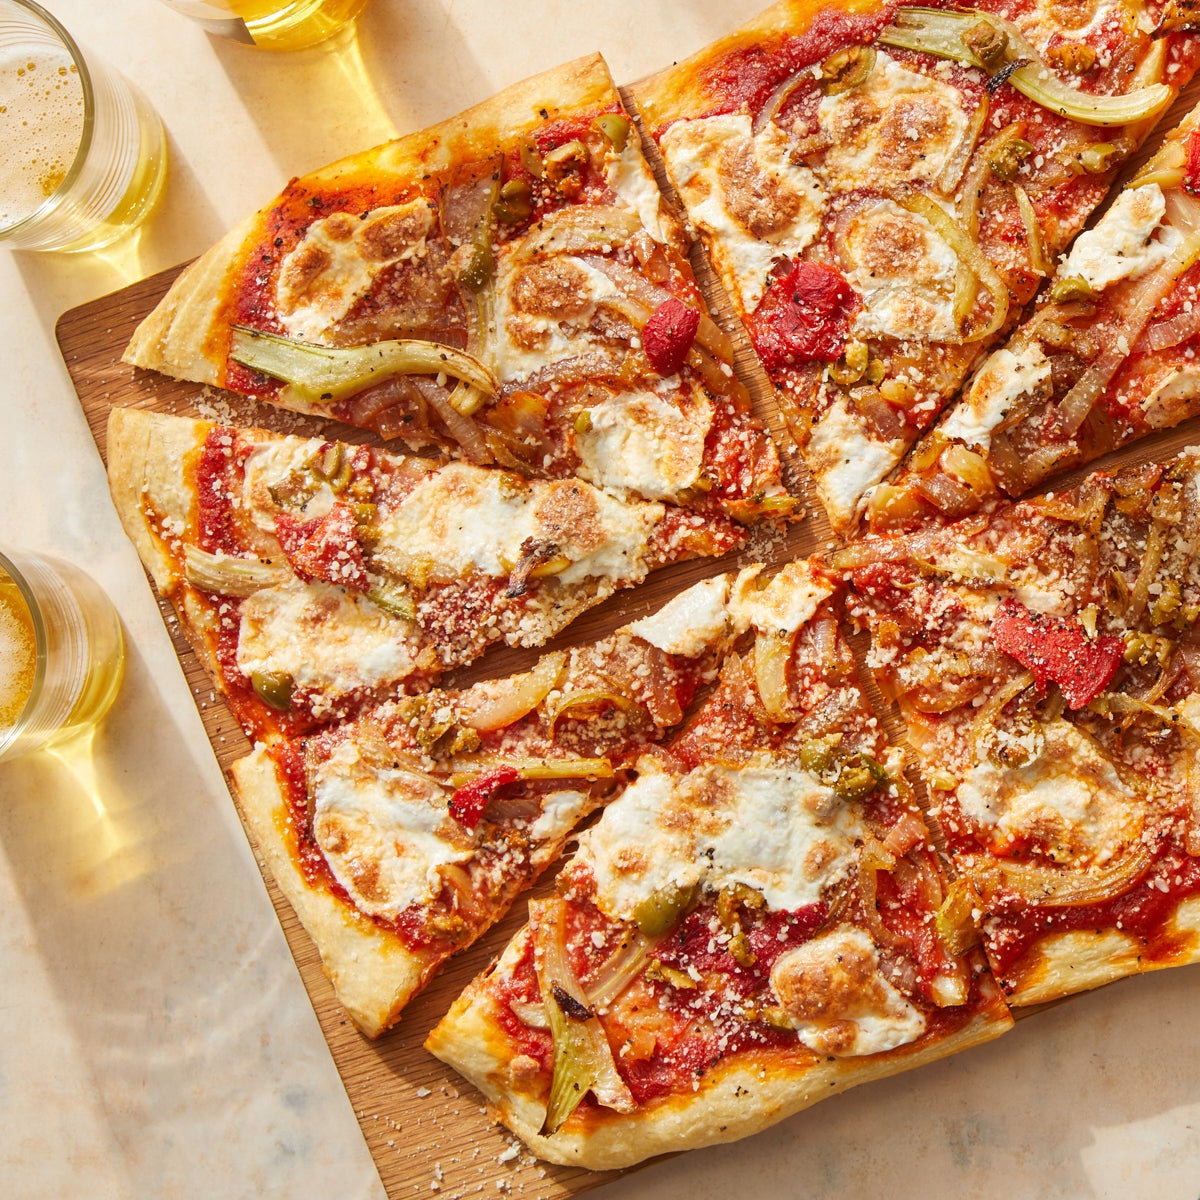 Fennel & Onion Pizza with Calabrian Chile Tomato Sauce